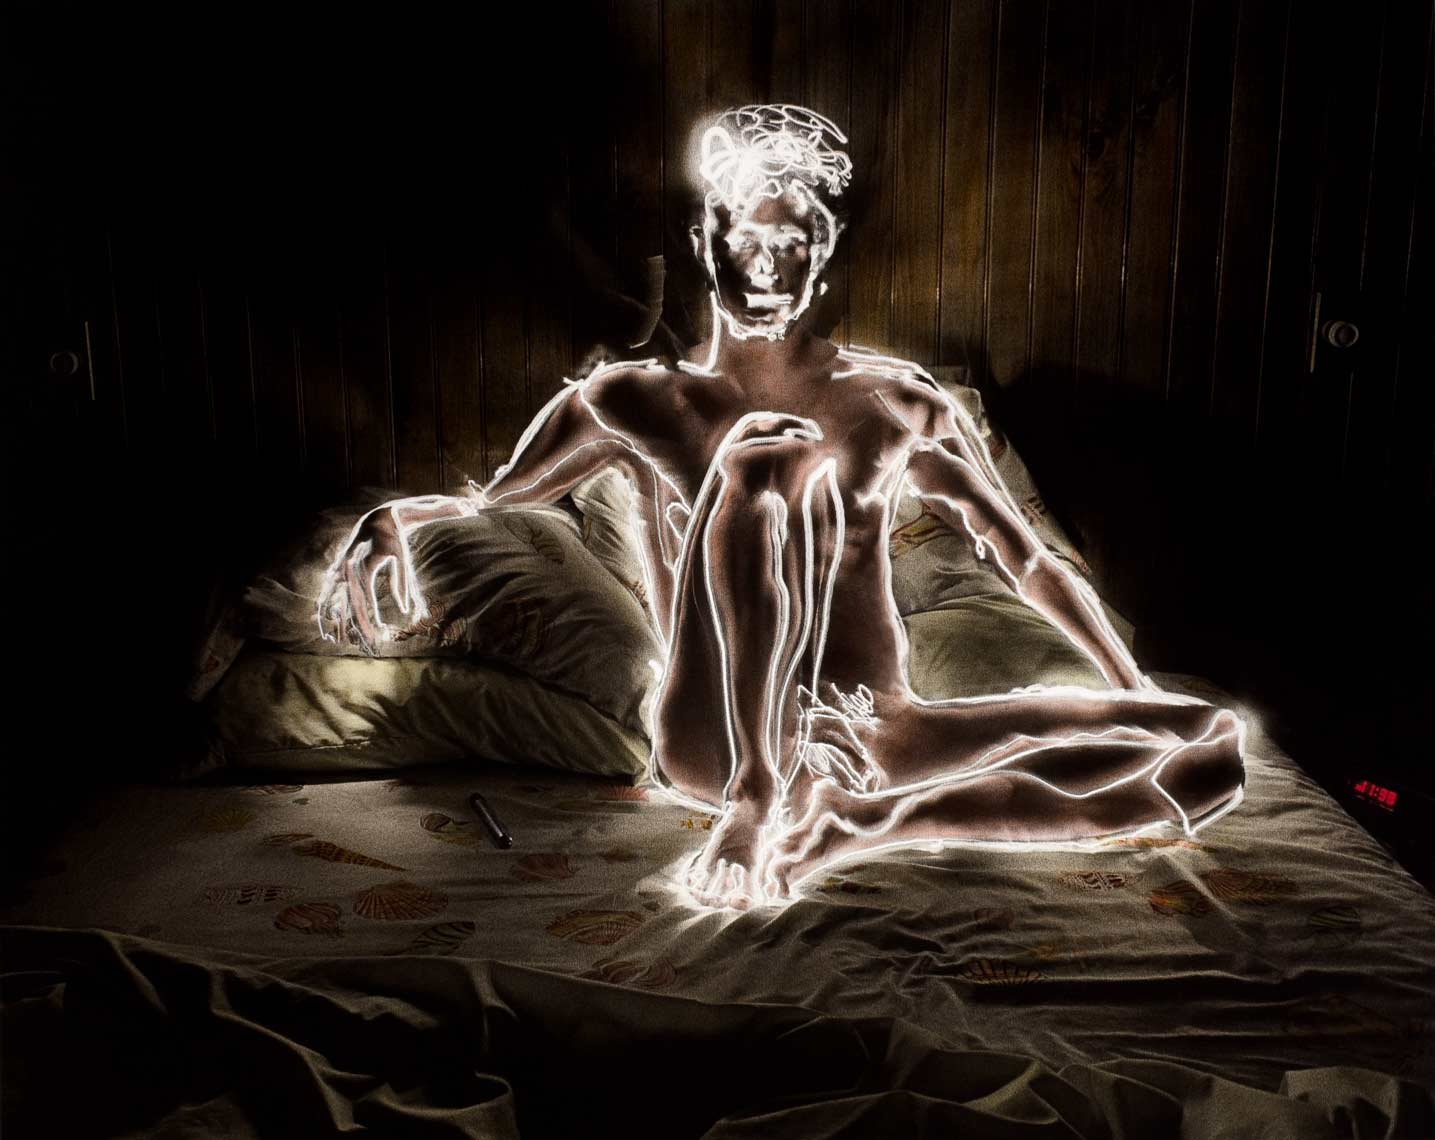 David Lebe; Self Portrait 11:98, 1981, male nude, light drawing, hand colored photograph